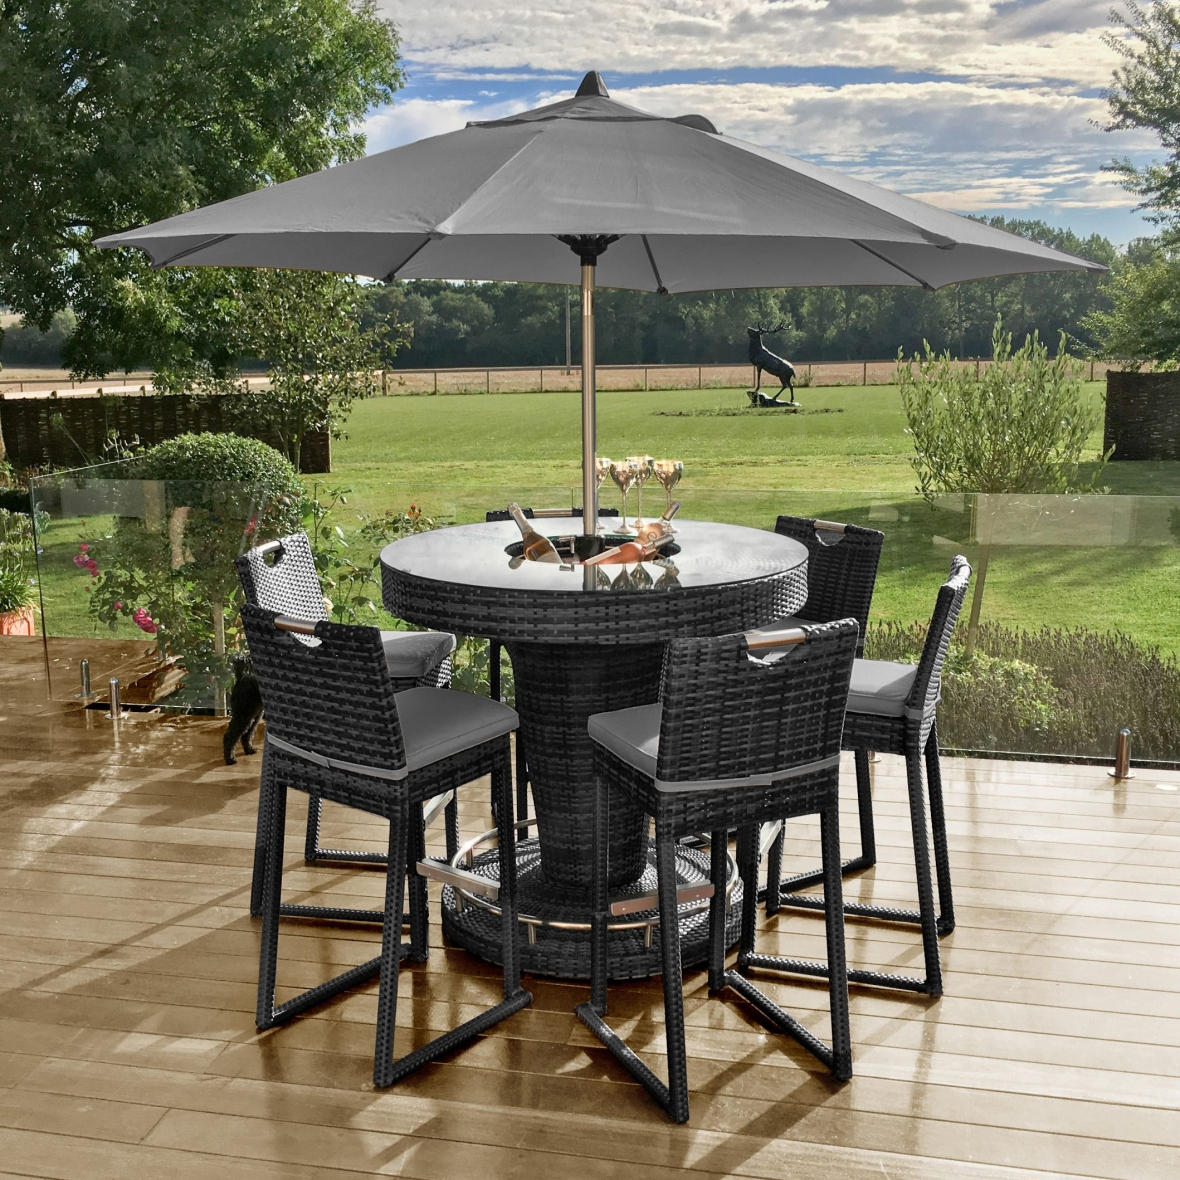 Maze Rattan 6 Seat Round Outdoor Furniture Bar Set - Mixed Grey Flat Weave